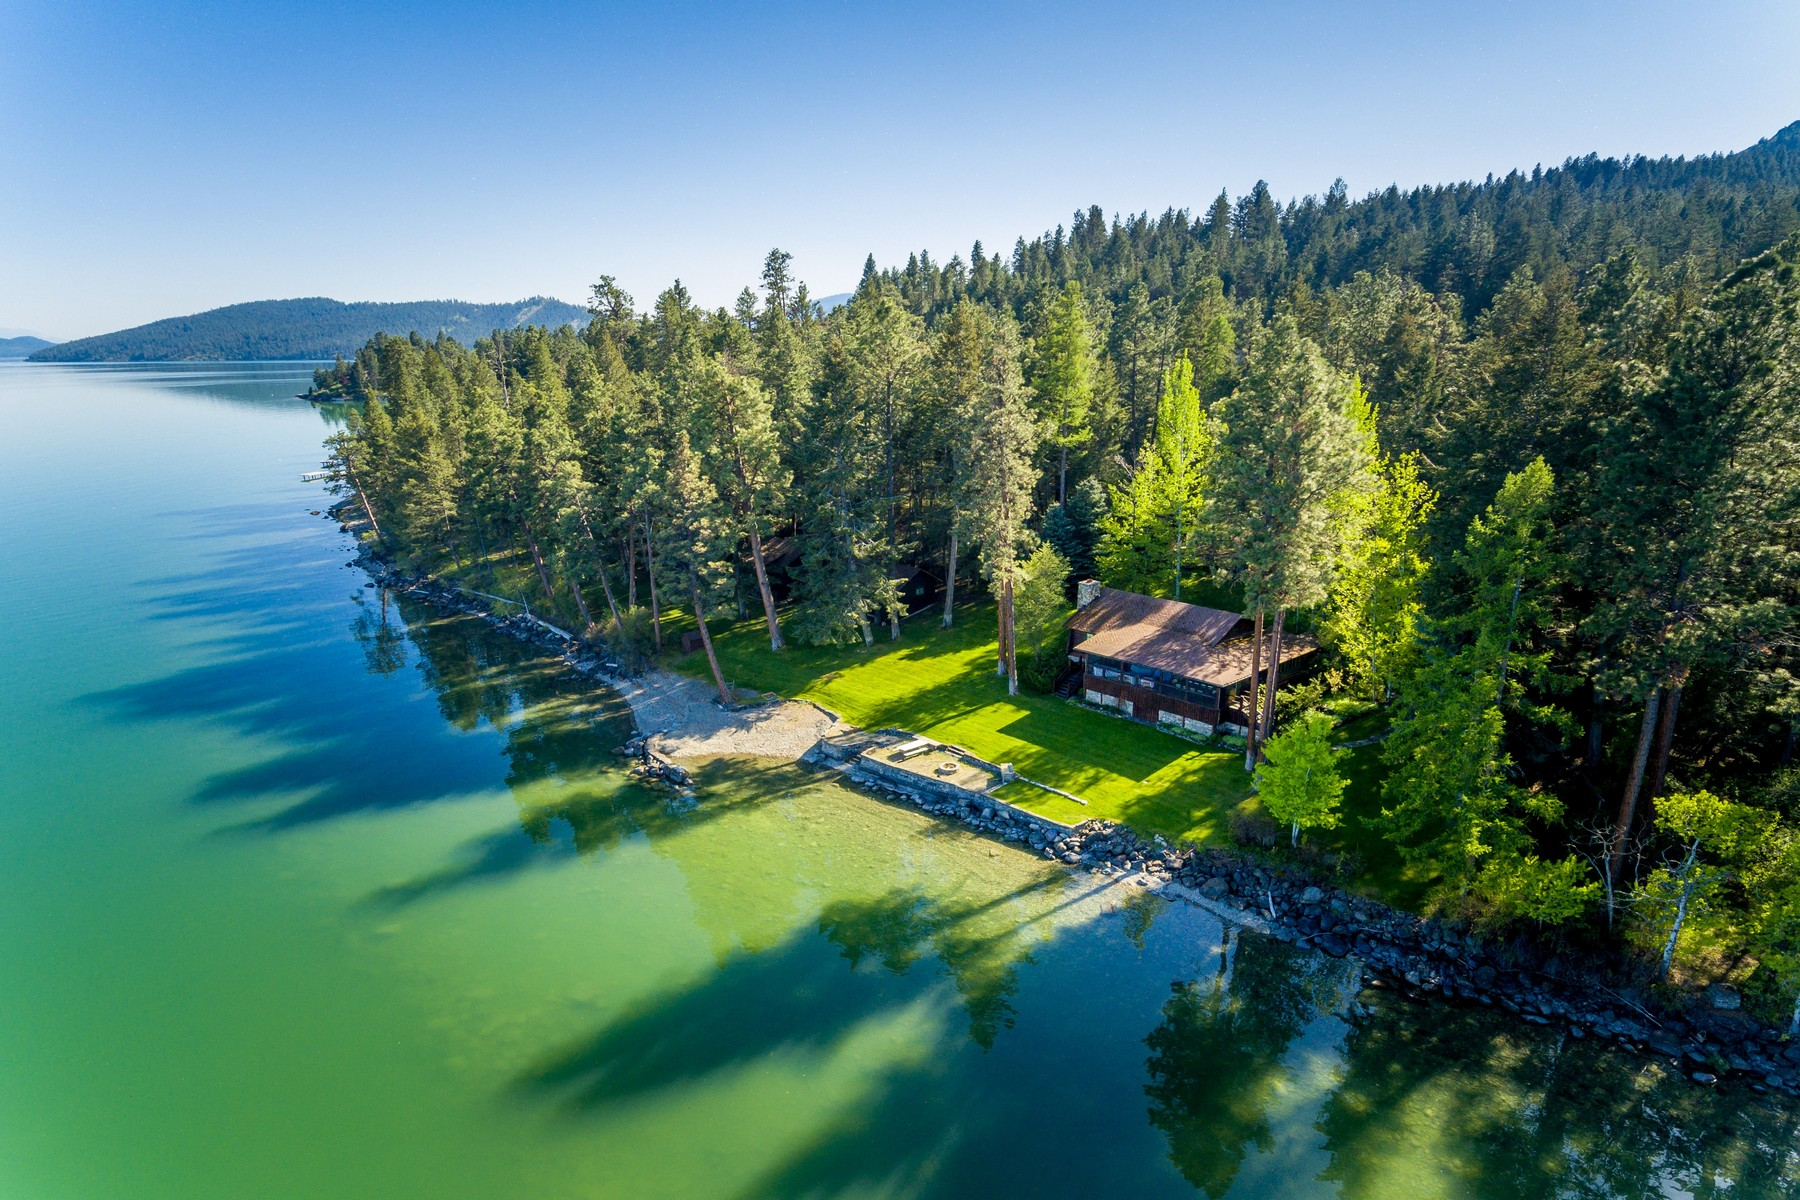 Single Family Homes for Sale at 23168 Rollins Lakeshore Drive Rollins, Montana 59931 United States